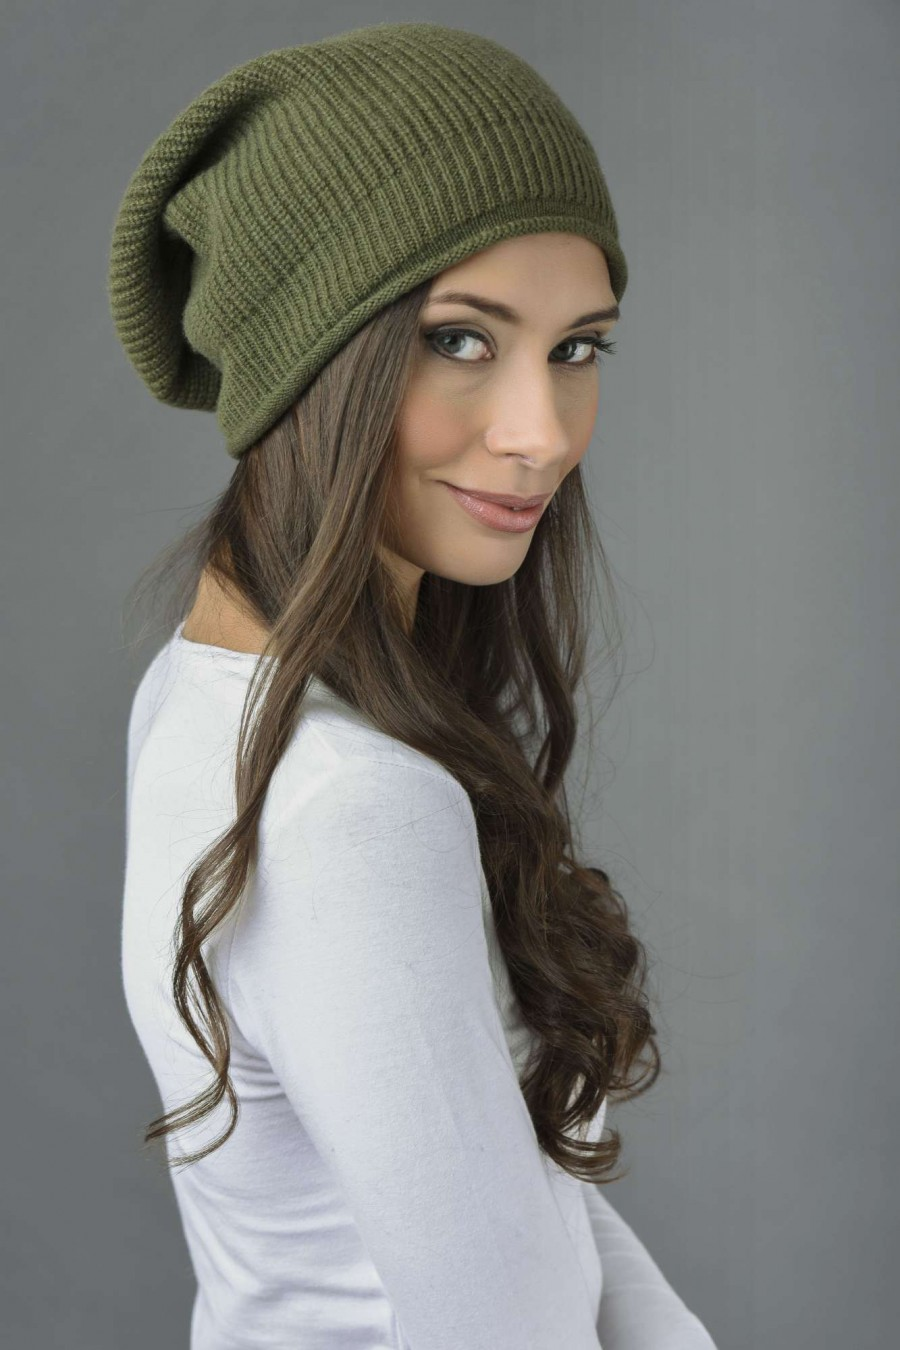 Pure Cashmere Ribbed Knitted Slouchy Beanie Hat in Loden Green ... a028b599cad